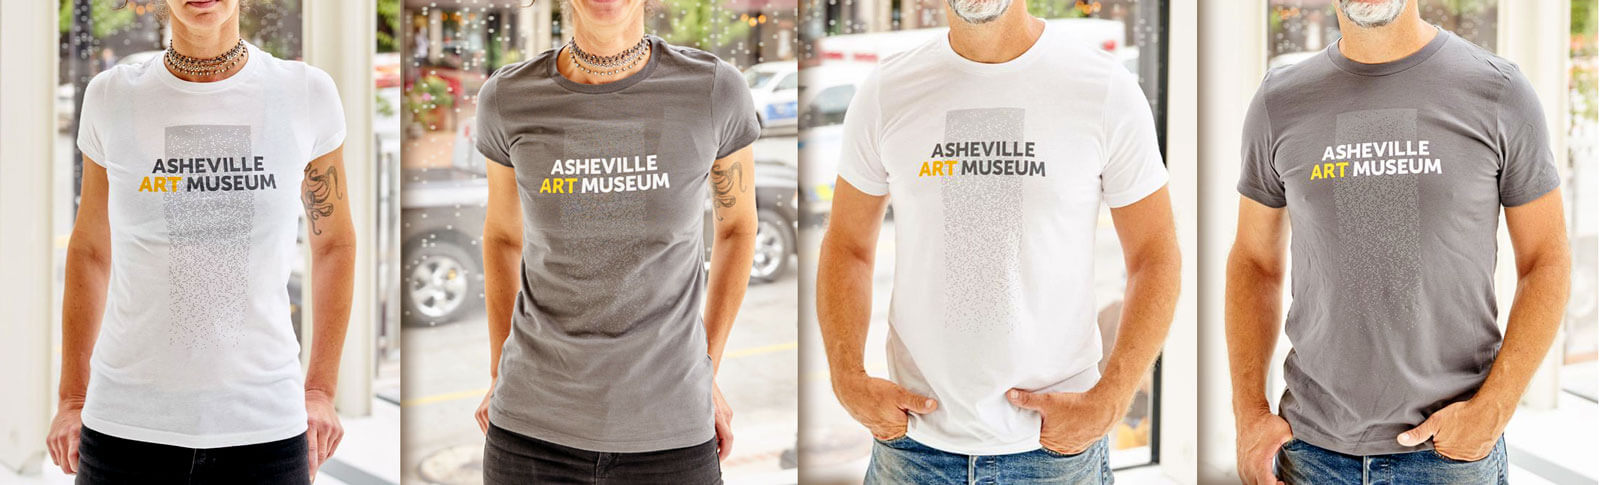 Male and female models wearing Asheville Art Museum shirts in gray and white, featuring the AAM logo centered in a vertical strip of a perforated pattern.